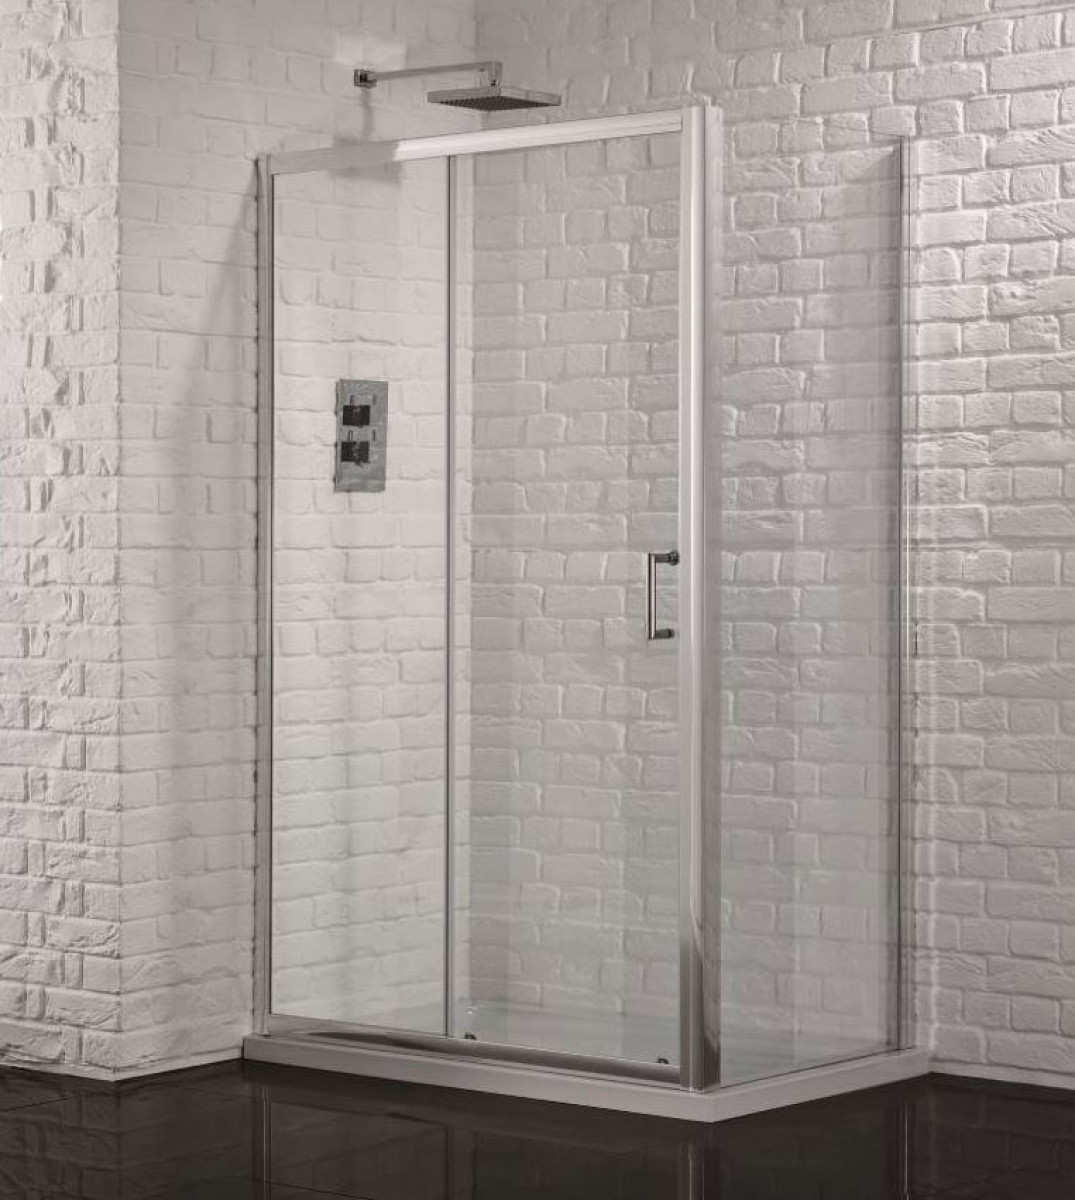 Aquadart venturi 6 1200mm sliding shower door for 1200mm shower door sliding